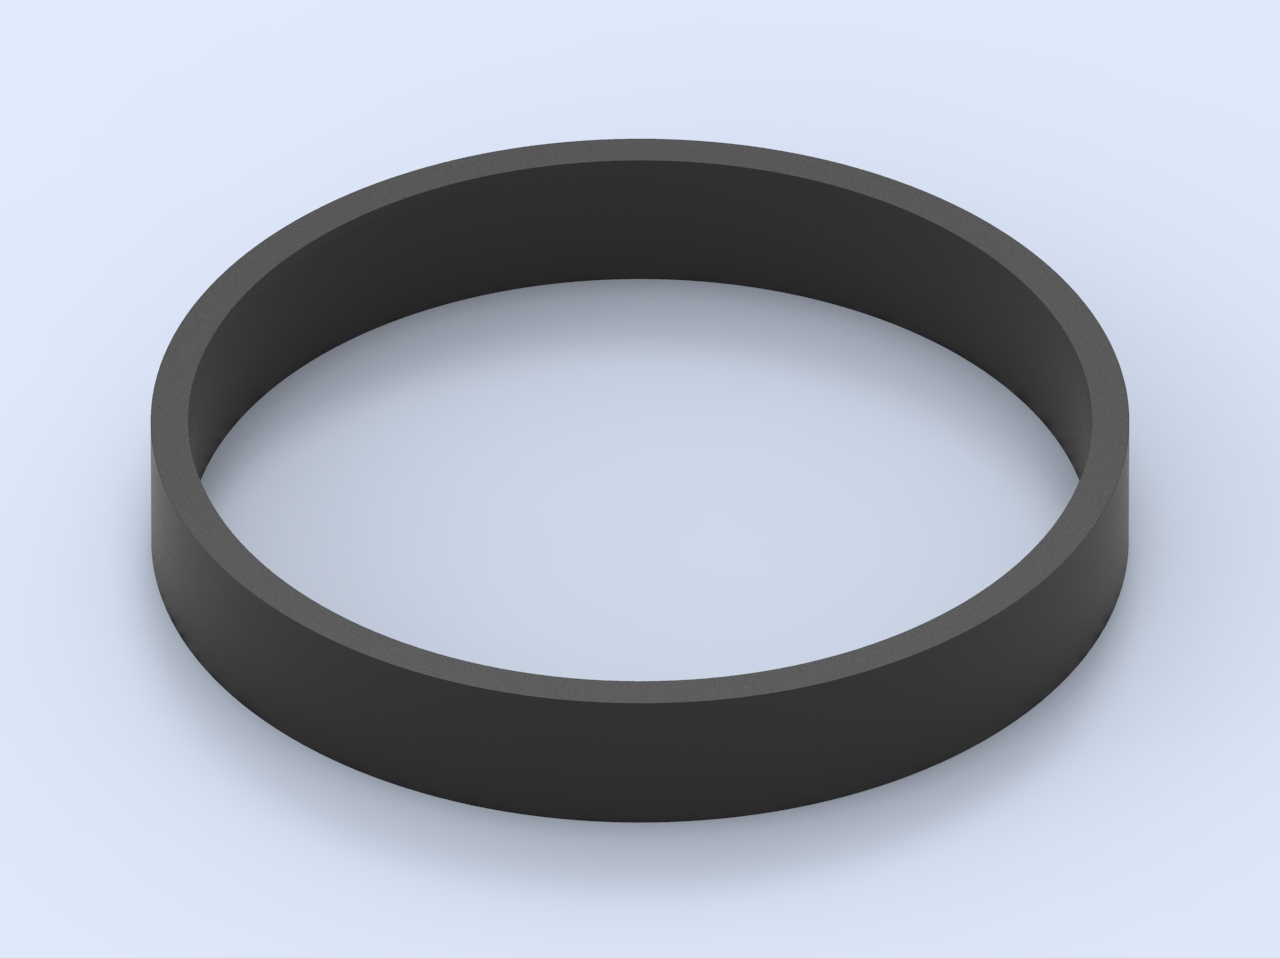 Guide Ring Version Continuous